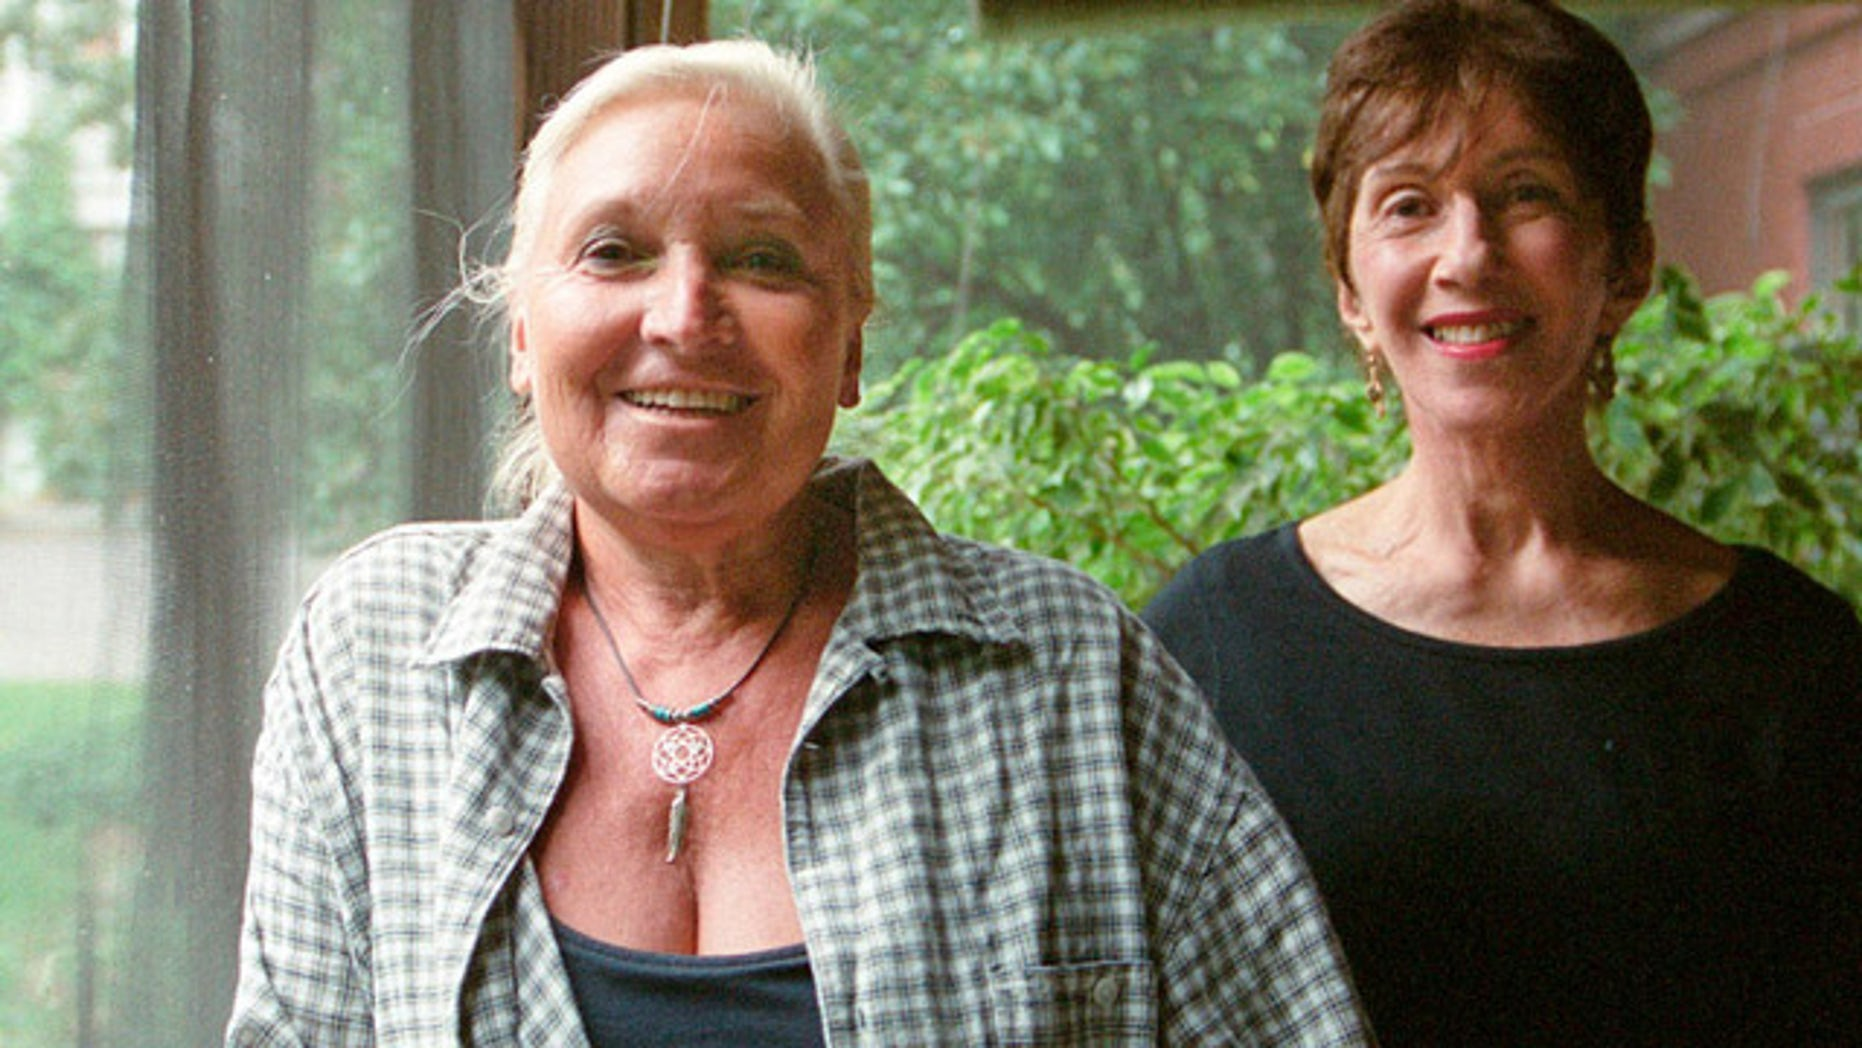 This undated photo shows Misha Defonseca, left, and Vera Lee, co-authors of 'Misha: A Memoire of the Holocaust Years' (AP)